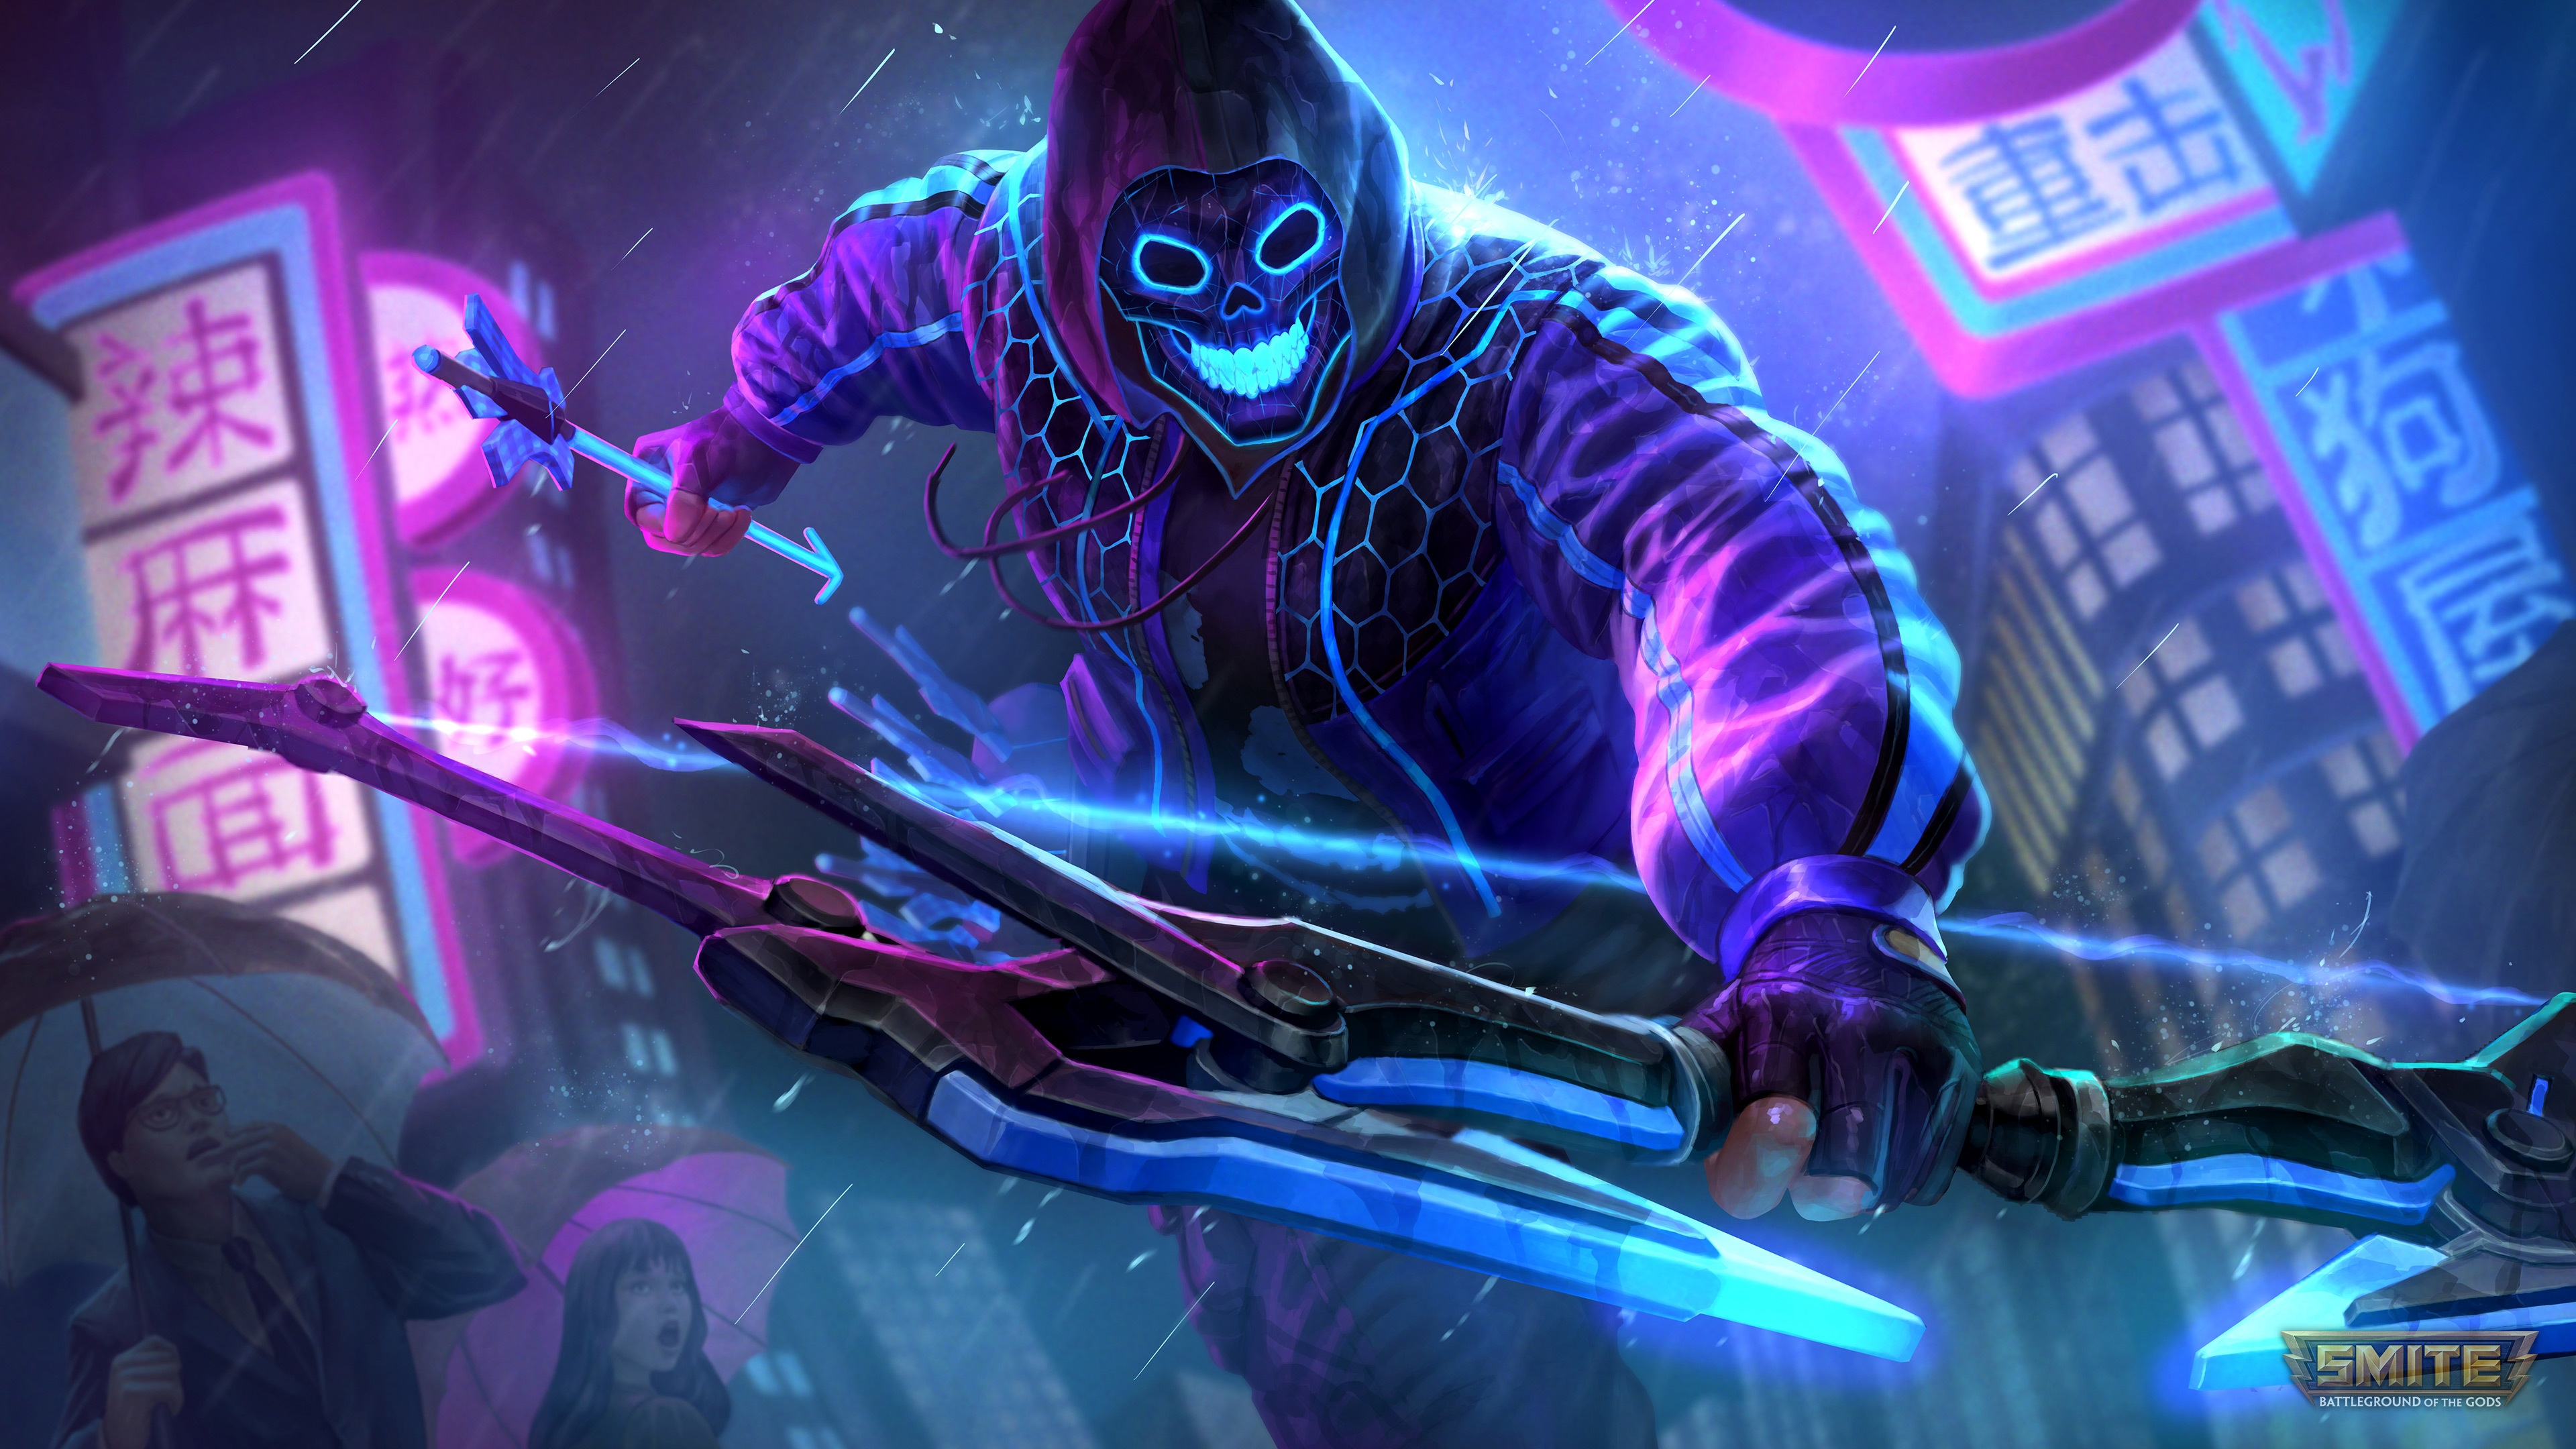 Smite Neon Hero Rama 4k Wallpaper Title Smite Neon Neon Rebellion Rama 2924897 Hd Wallpaper Backgrounds Download